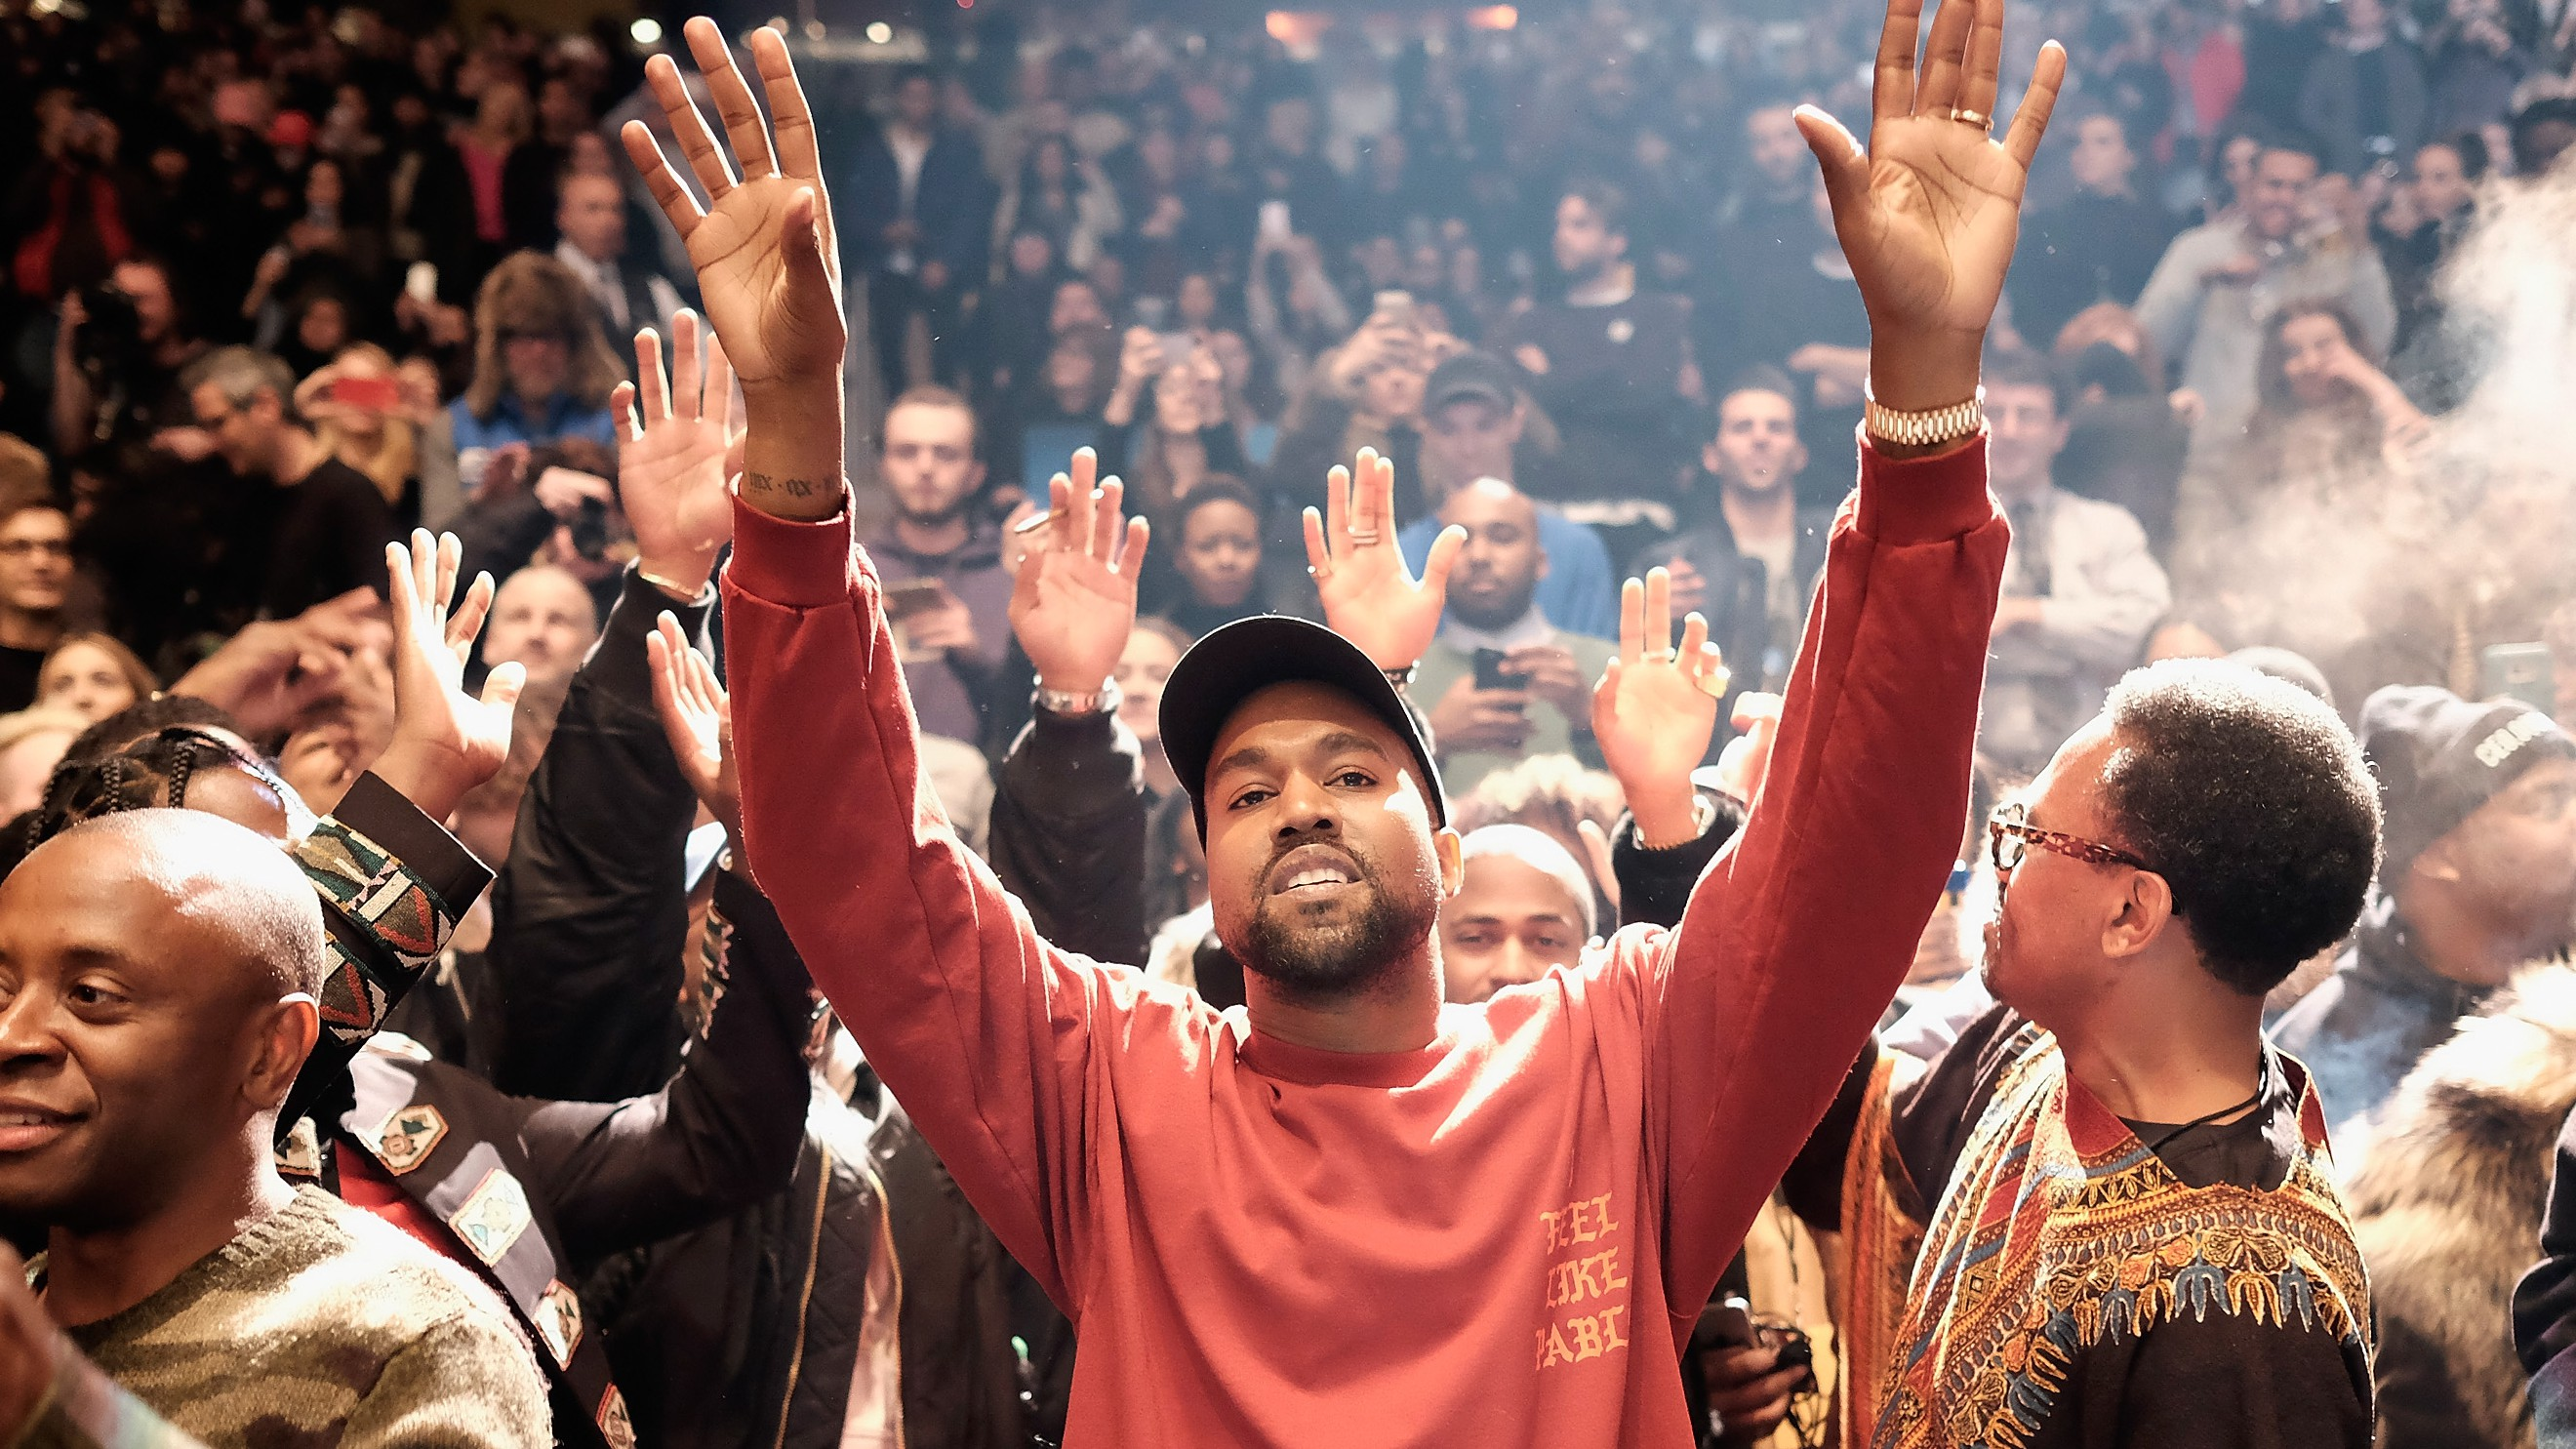 how to download life of pablo, life of pablo download